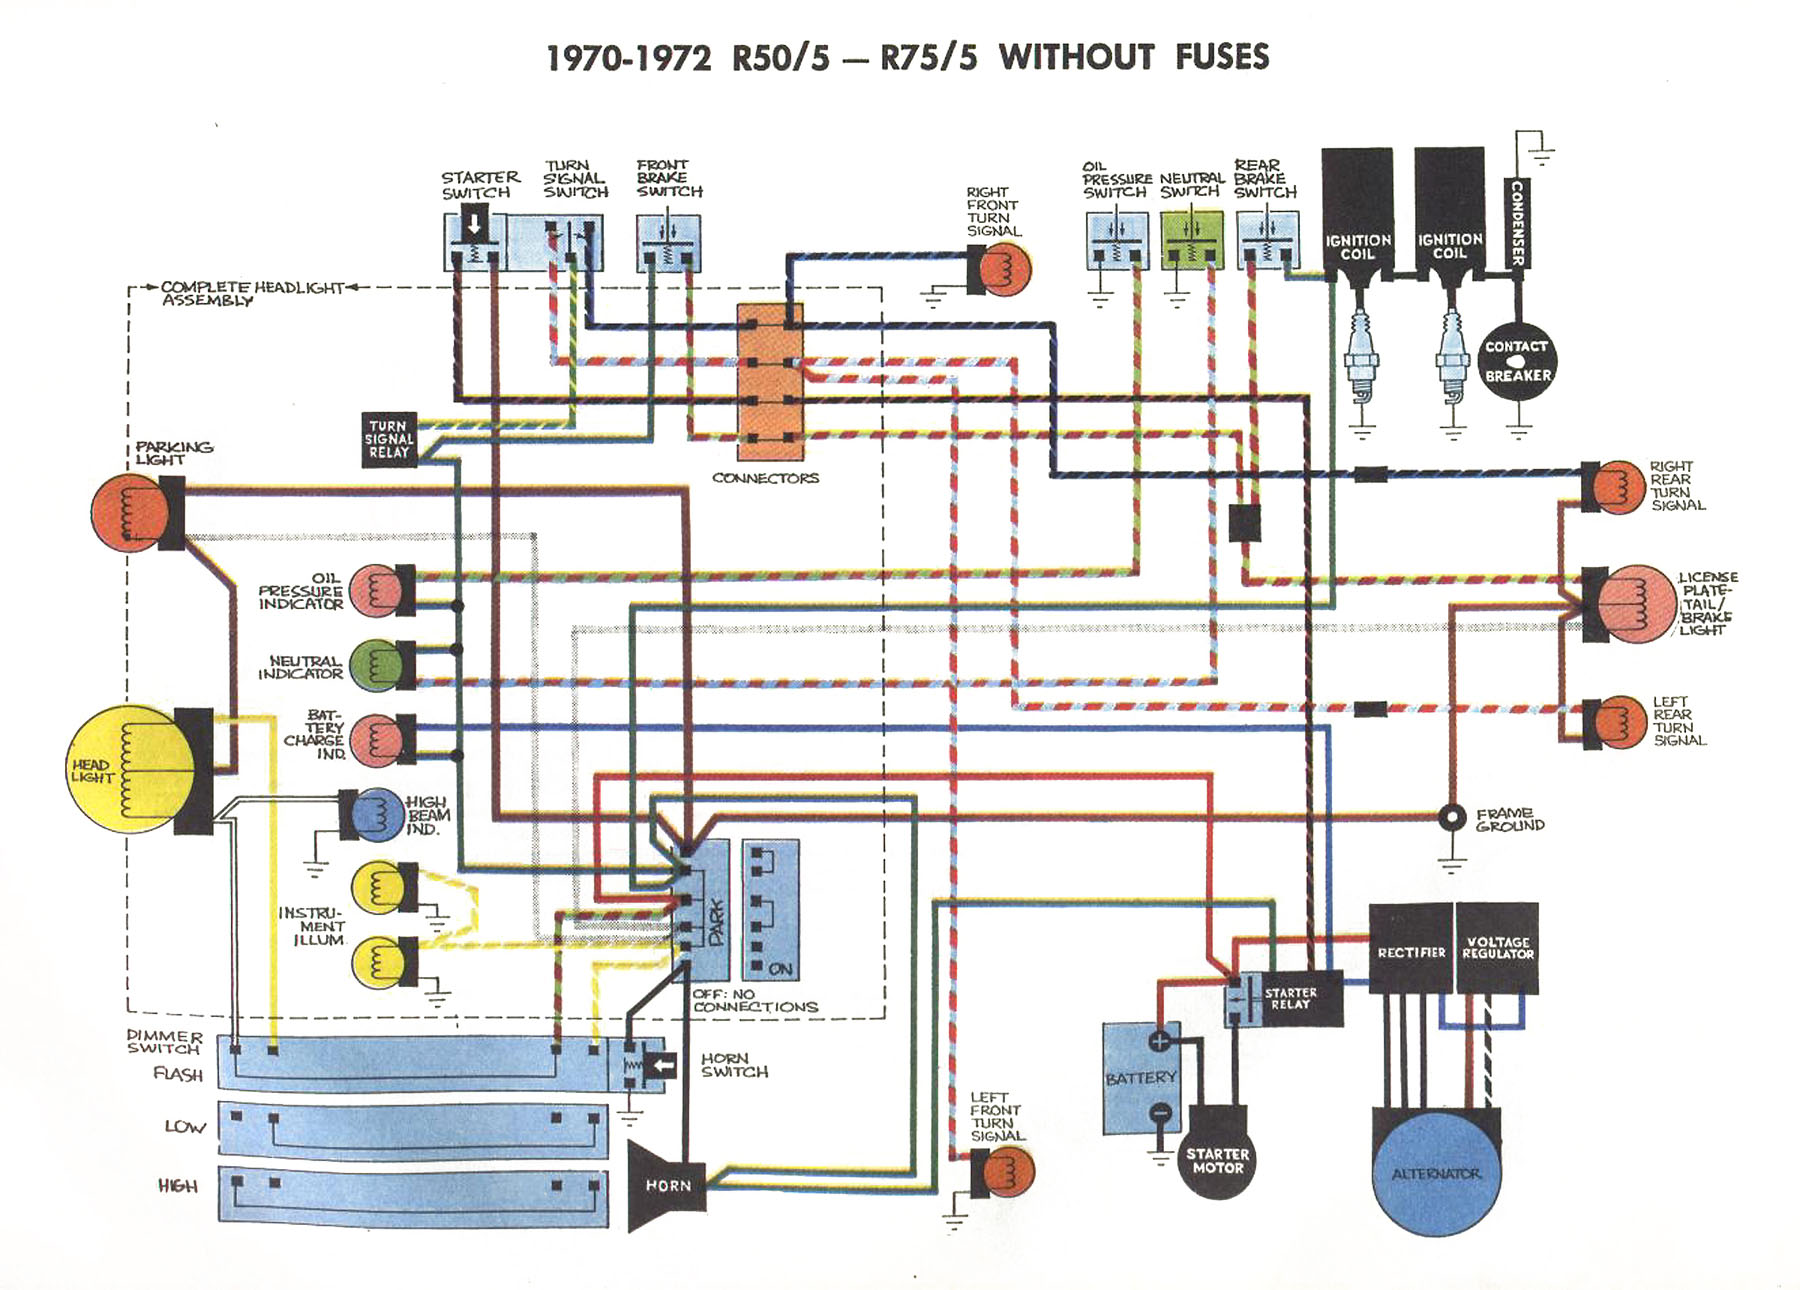 5 united / articles :: wiring diagrams bmw r75 5 wiring diagram #2